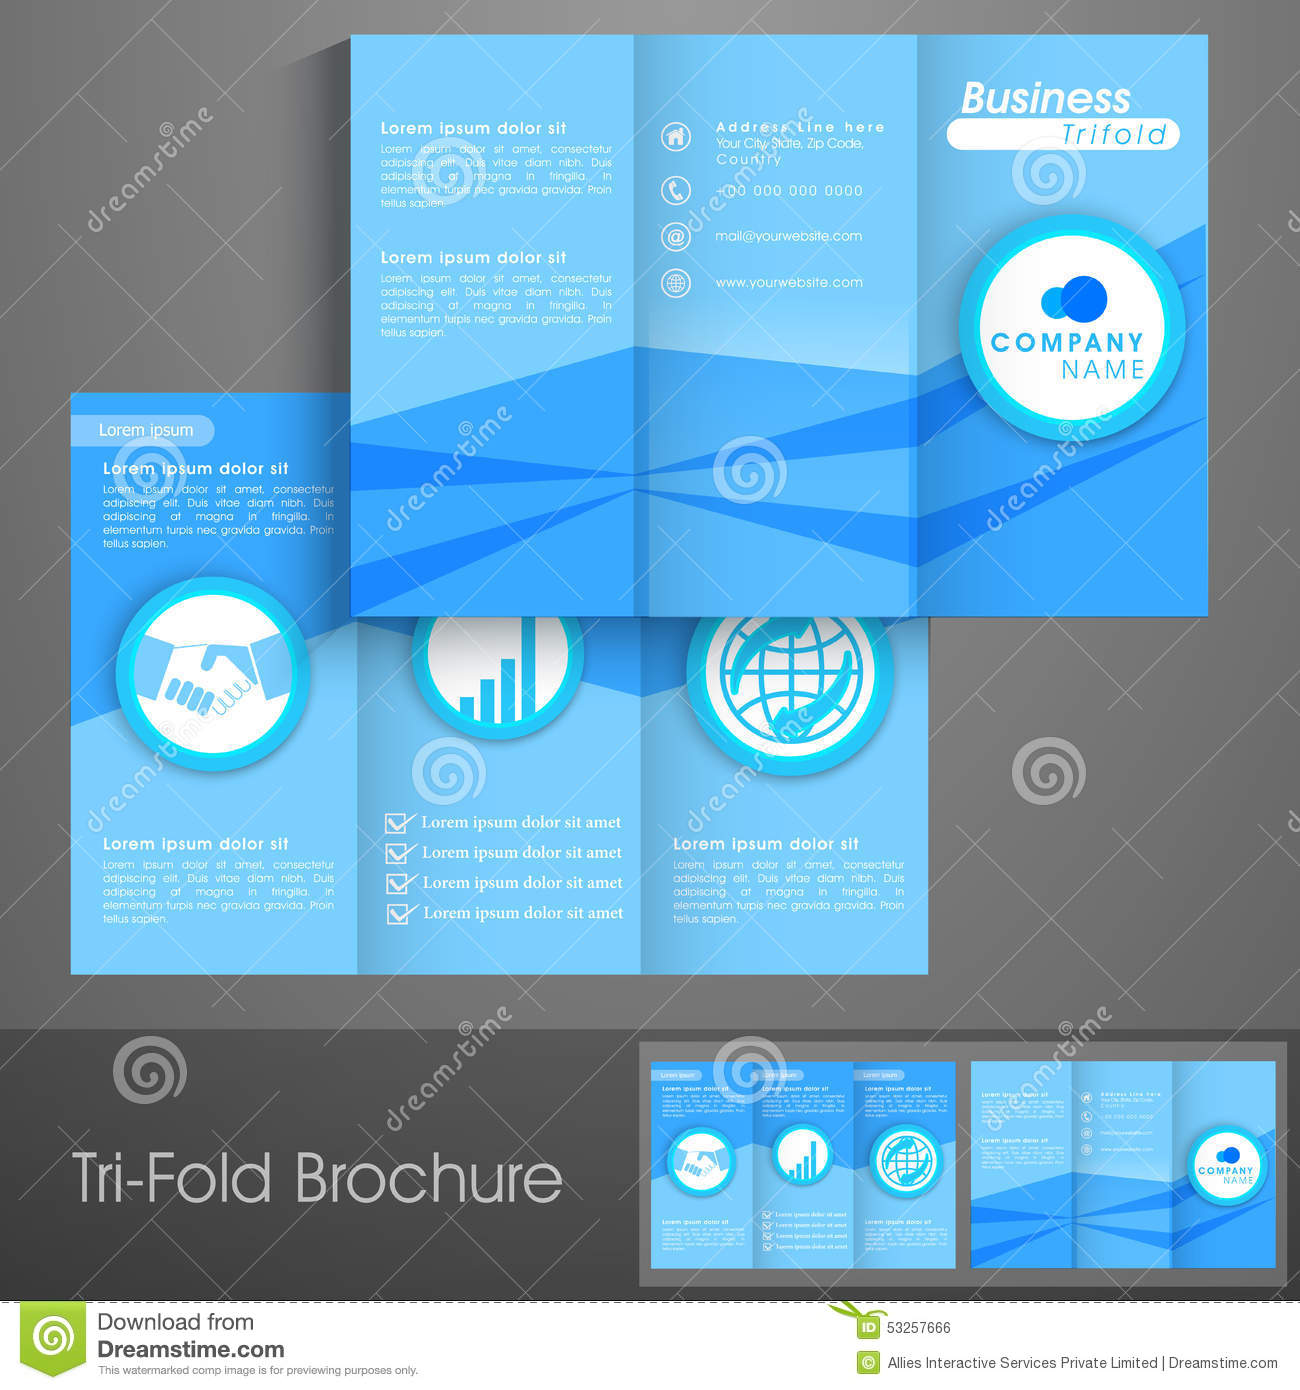 Professional trifold brochure template or flyer for for Tri fold business brochure template